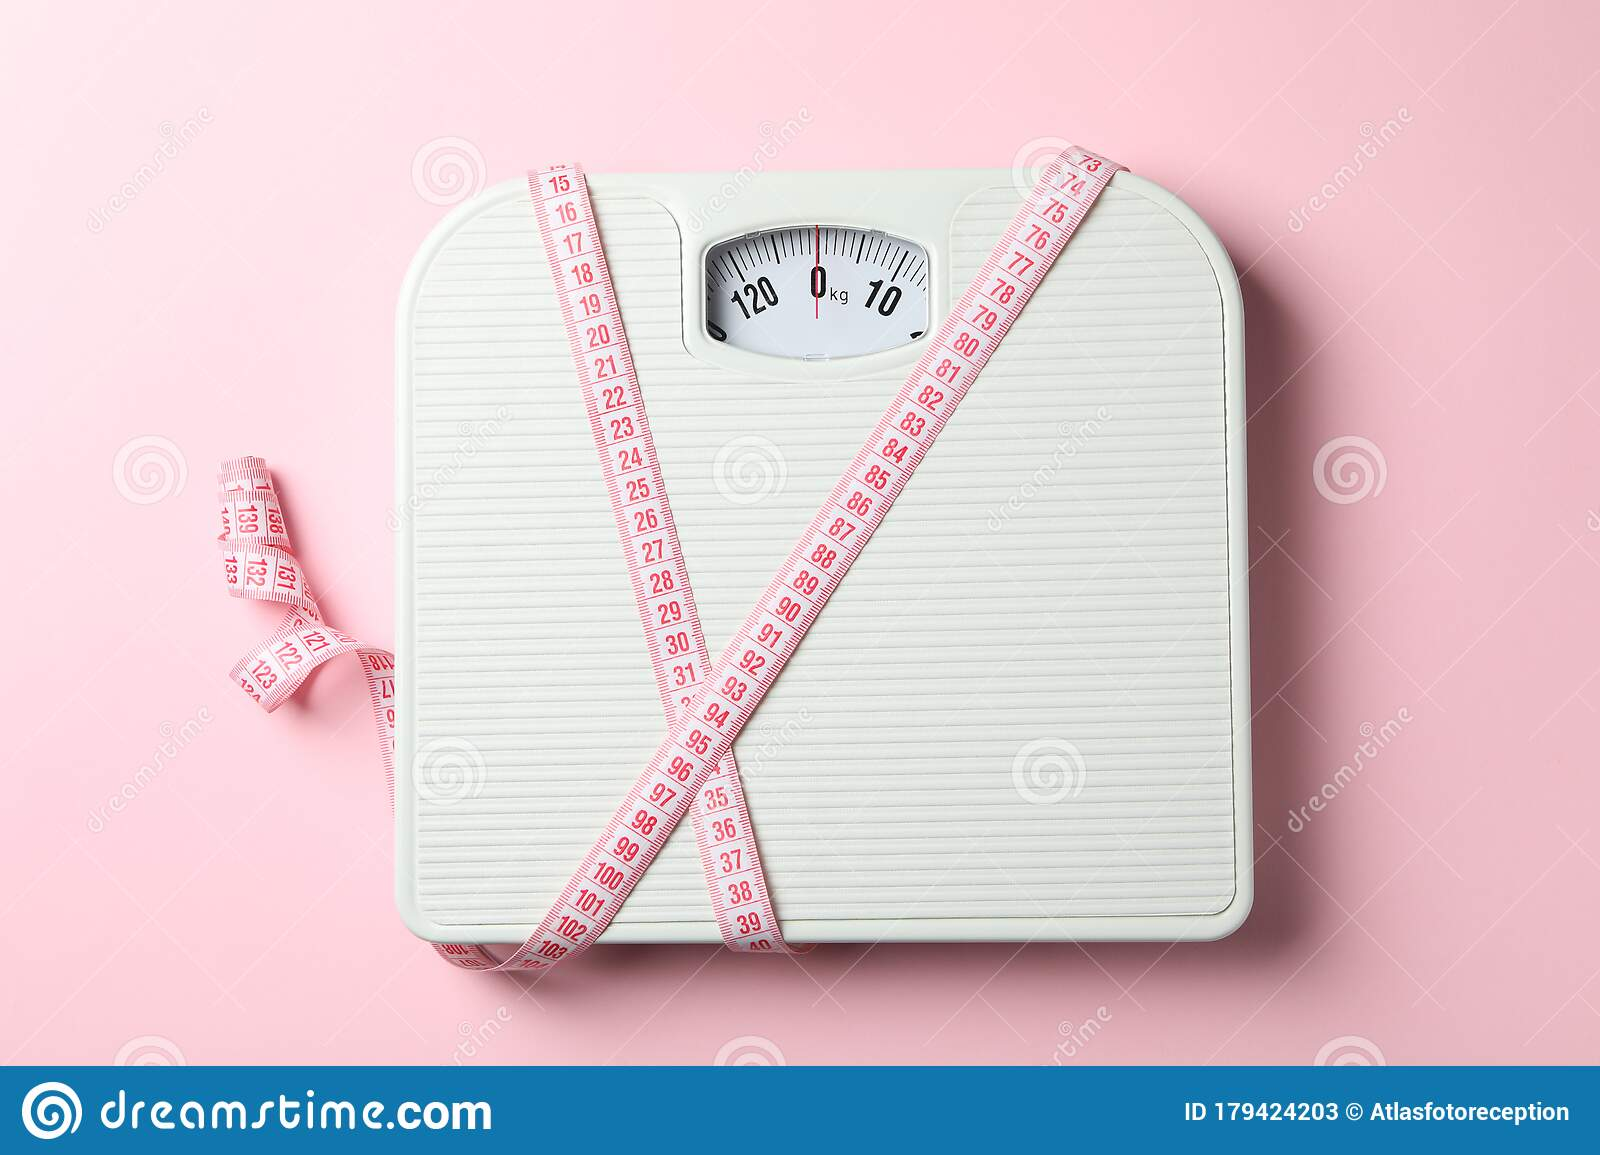 Scales And Measuring Tape On Background Weight Loss Concept Stock Image Image Of View Space 179424203